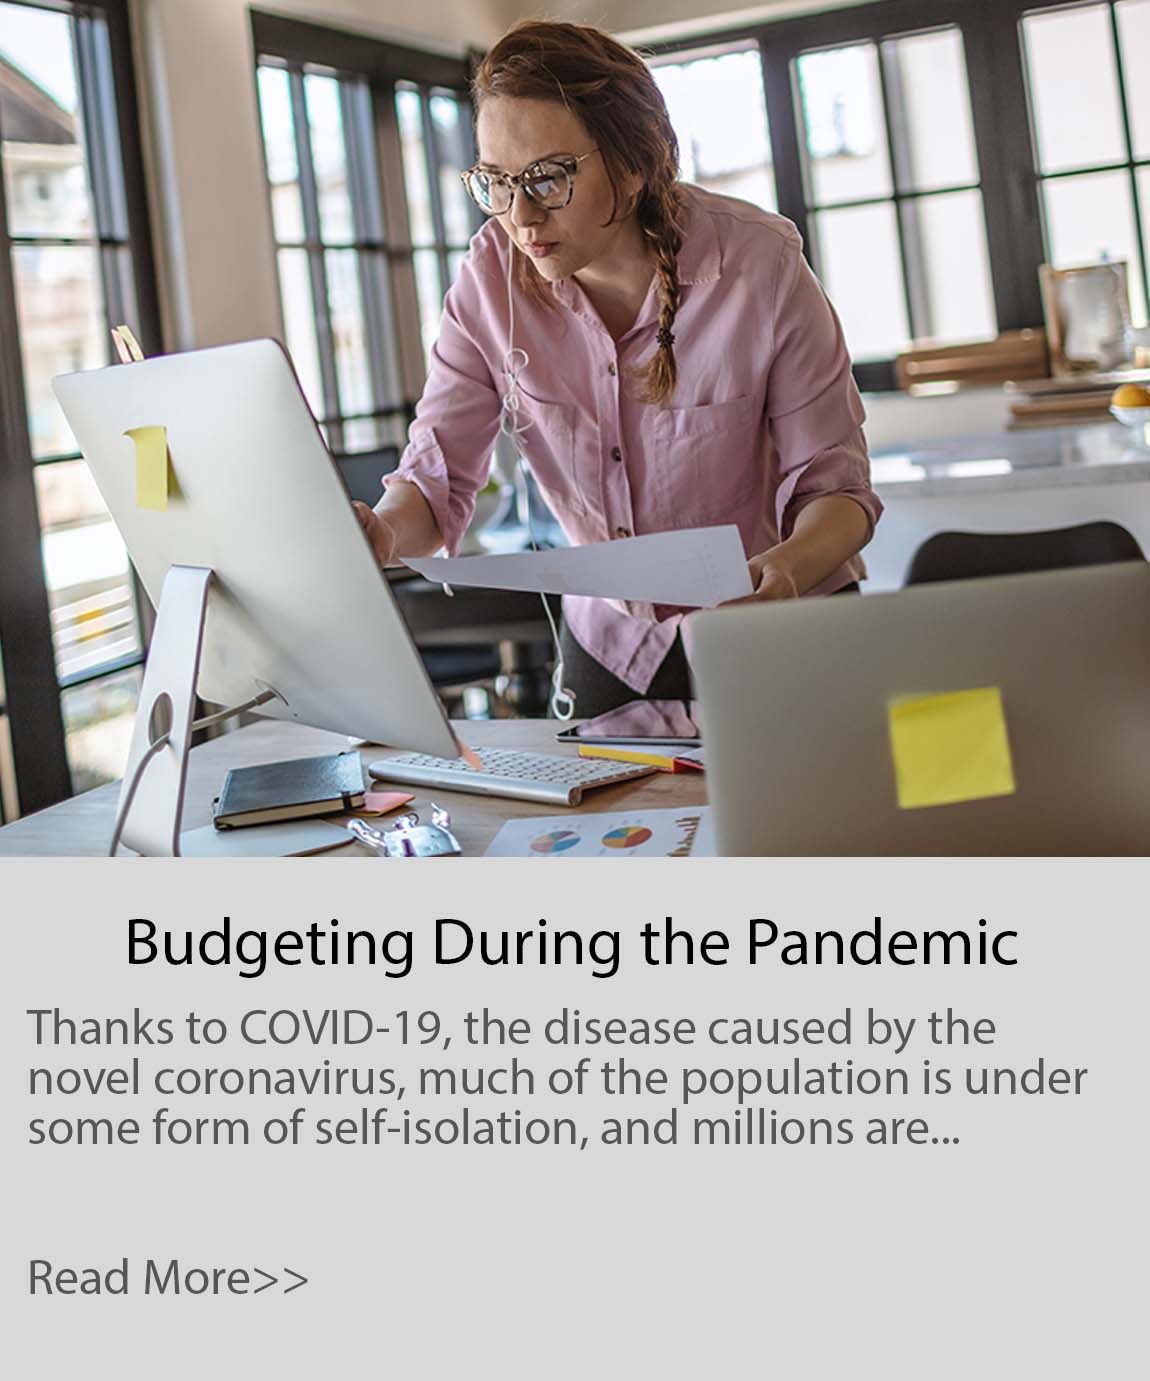 budgeting during the pandemic